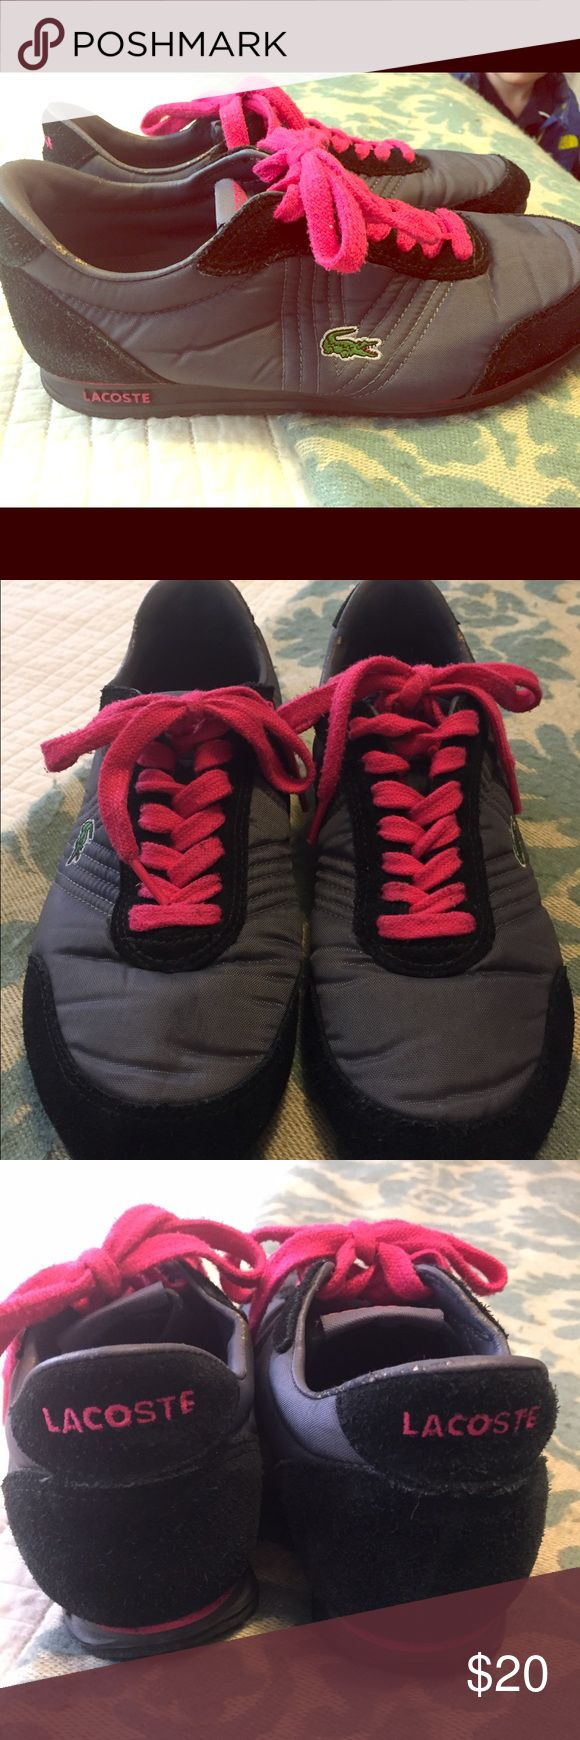 1 day sale!! Lacoste tennis shoes Lacoste pink black and grey tennis shoes. Good used condition. A few scuffs around the top near ankles. Cute shoes to throw on for a sporty look and super comfortable! Lacoste Shoes Sneakers